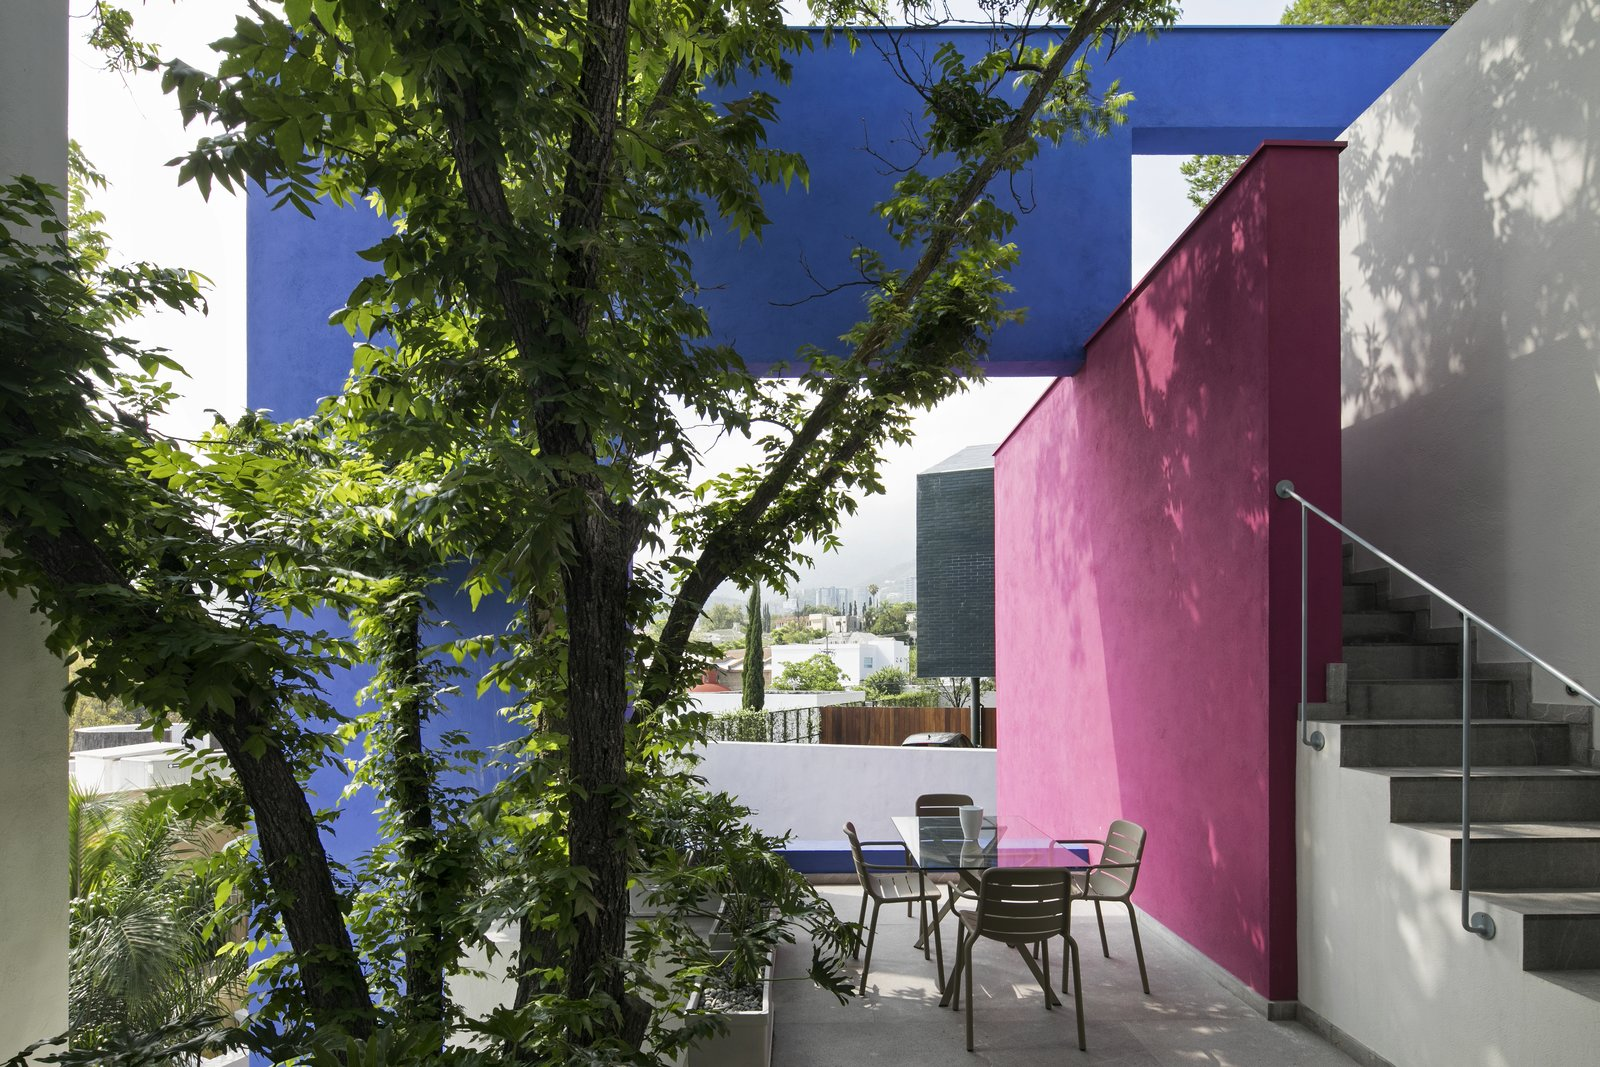 Outdoor, Large Patio, Porch, Deck, Rooftop, Trees, and Side Yard The roof terrace is conceived as a large exterior room, delimited by walls and windows that frame the fantastic views of the Monterrey mountains.  Photos from A Bright Mexican Home Brilliantly Weaves Nature Into its Design